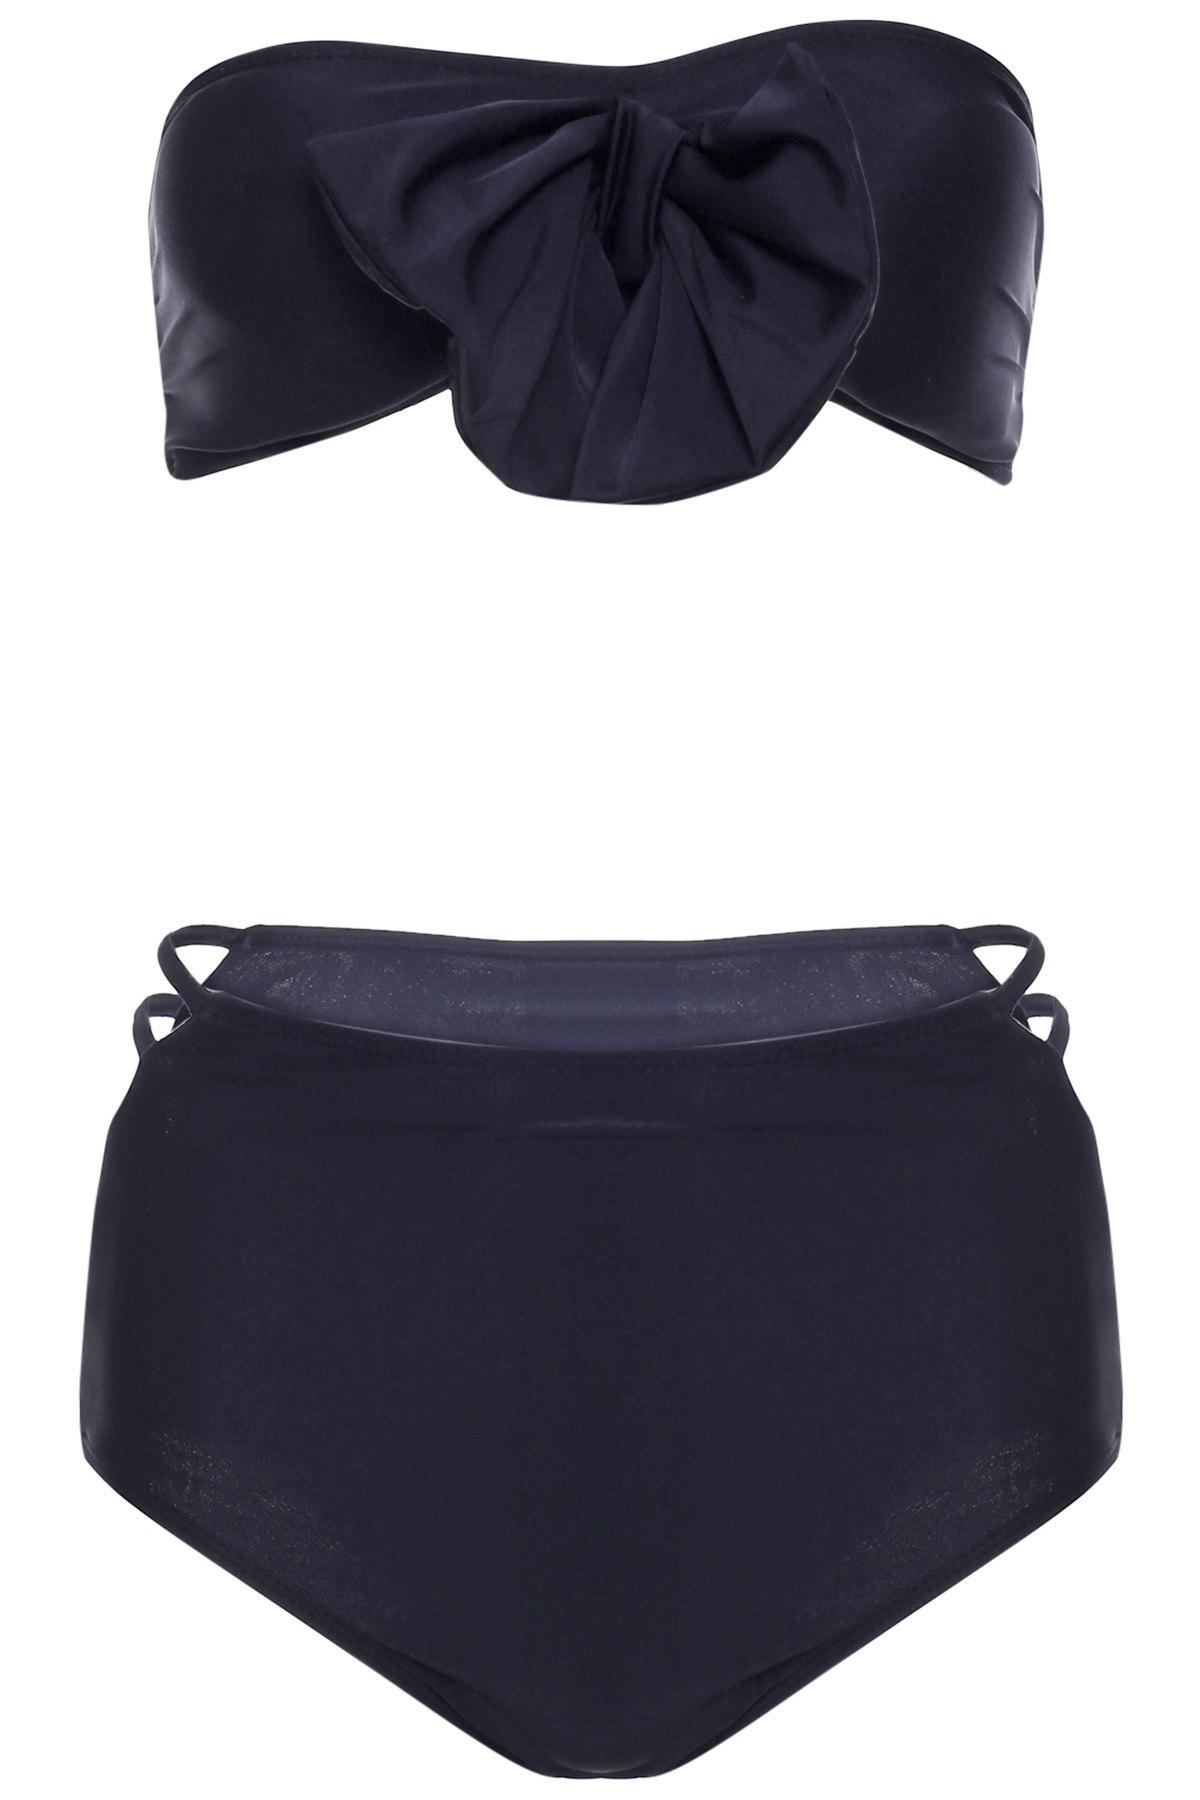 Sexy Strapless Bowknot Embellished Hollow Out Bikini Set For Women - BLACK XL